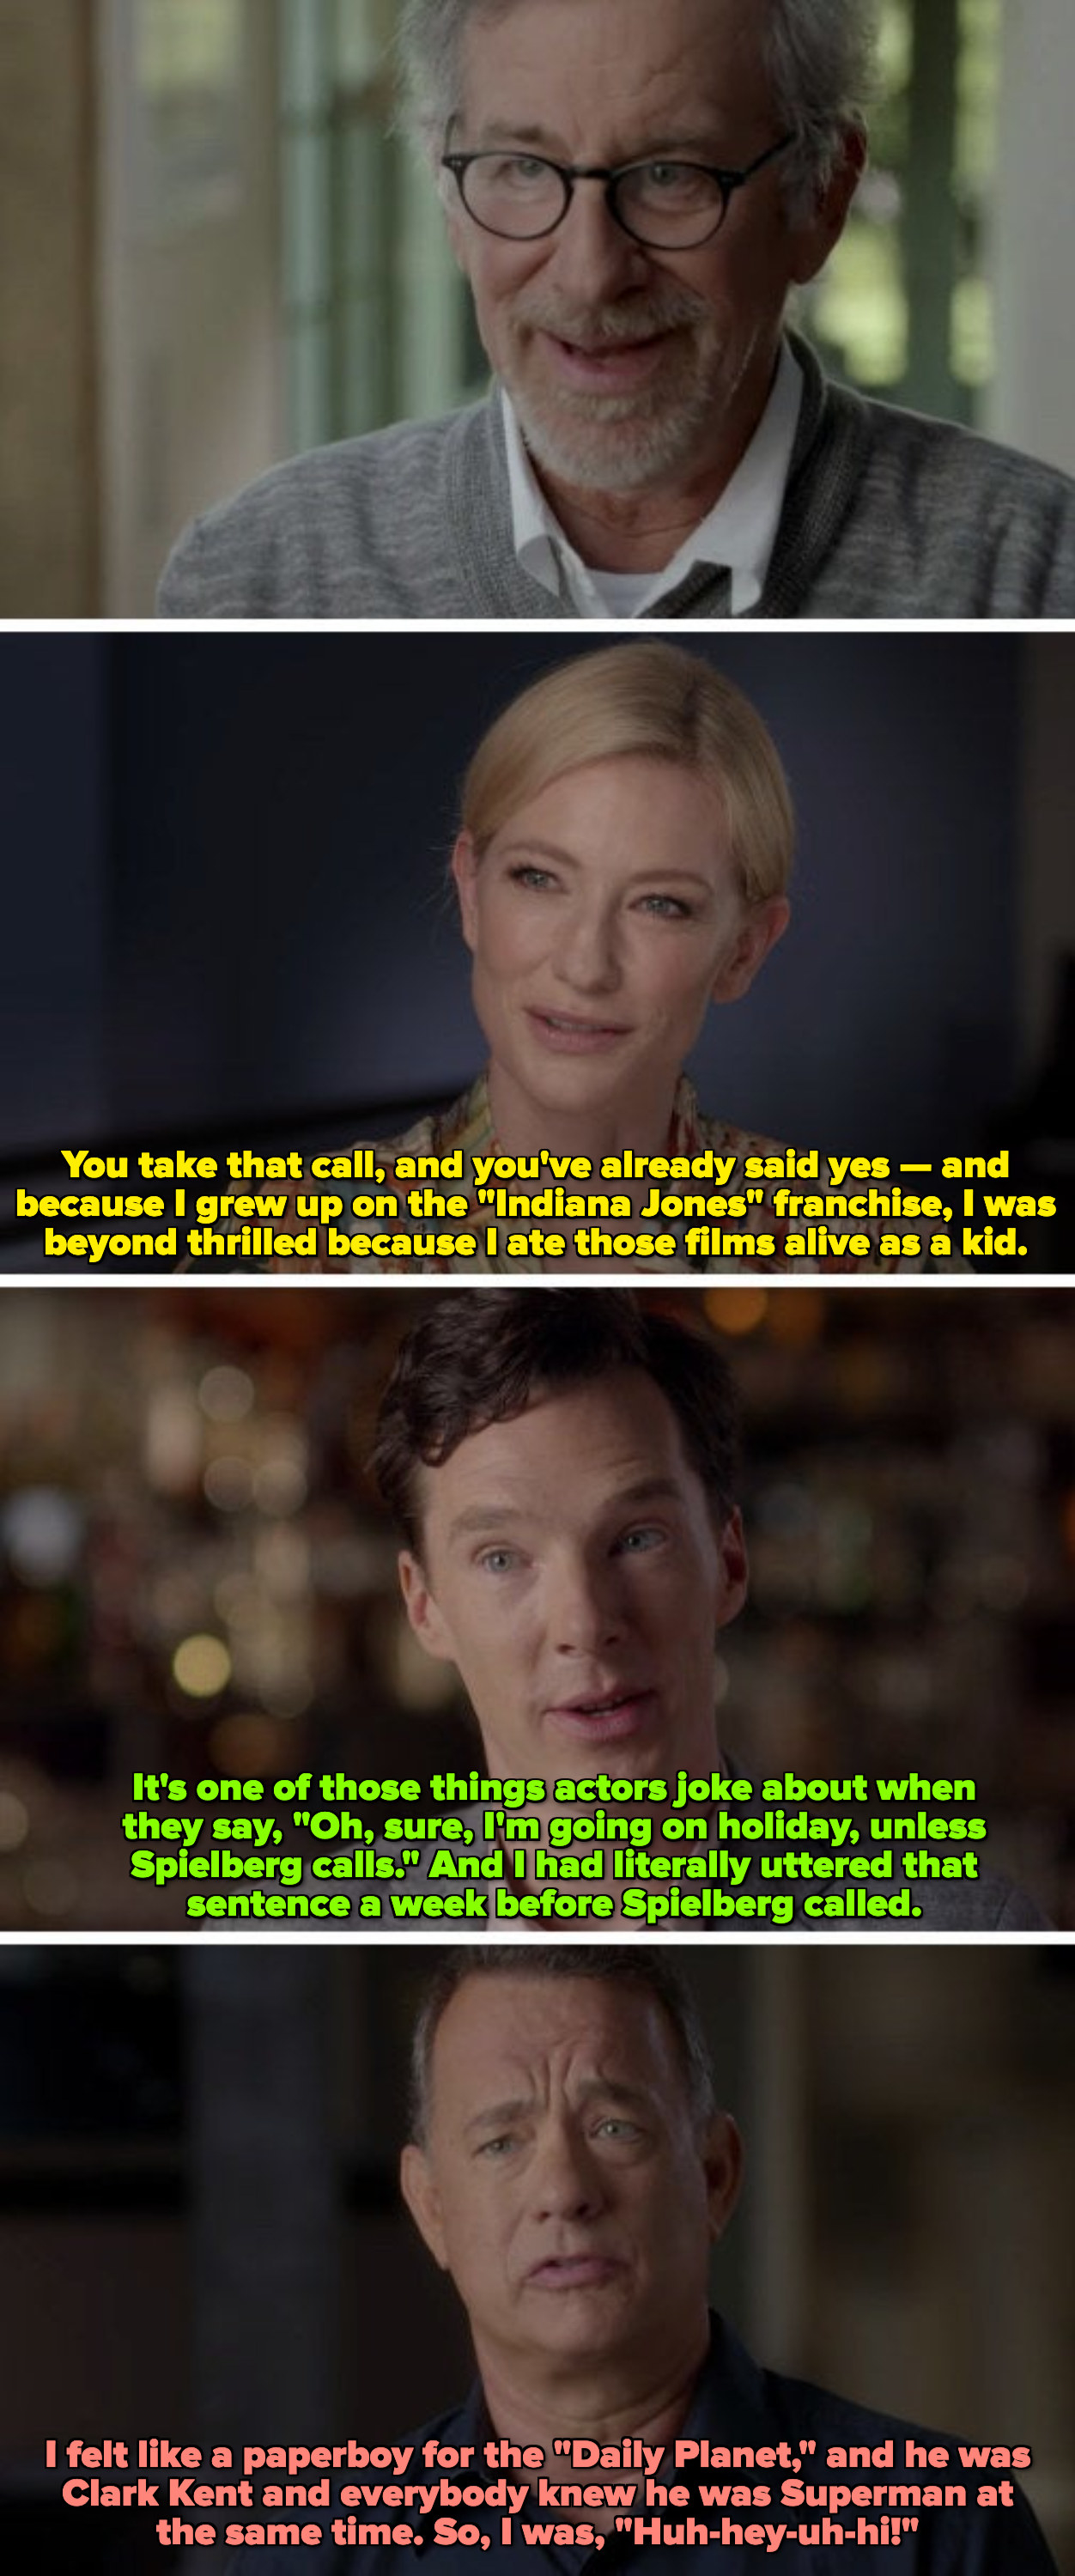 """Cate Blanchett, Benedict Cumberbatch, and Tom Hanks describing the thrill of receiving """"The Call"""" from Steven Spielberg to shoot a movie"""